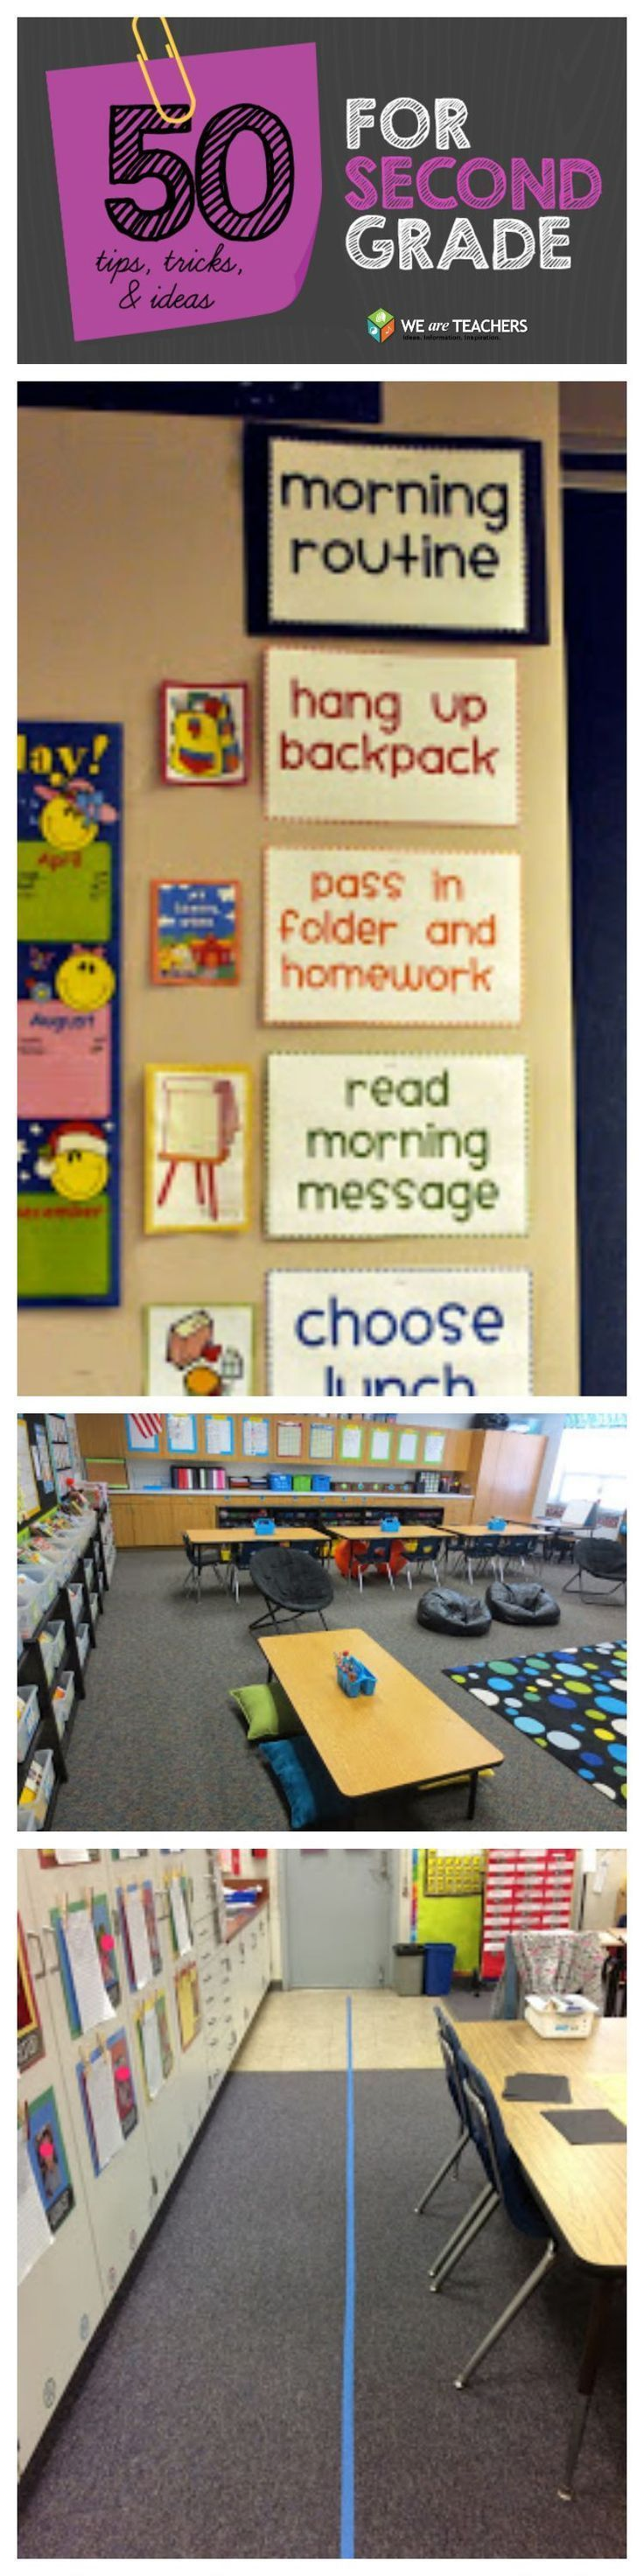 So many amazing tips and tricks for 2nd grade classroom teachers